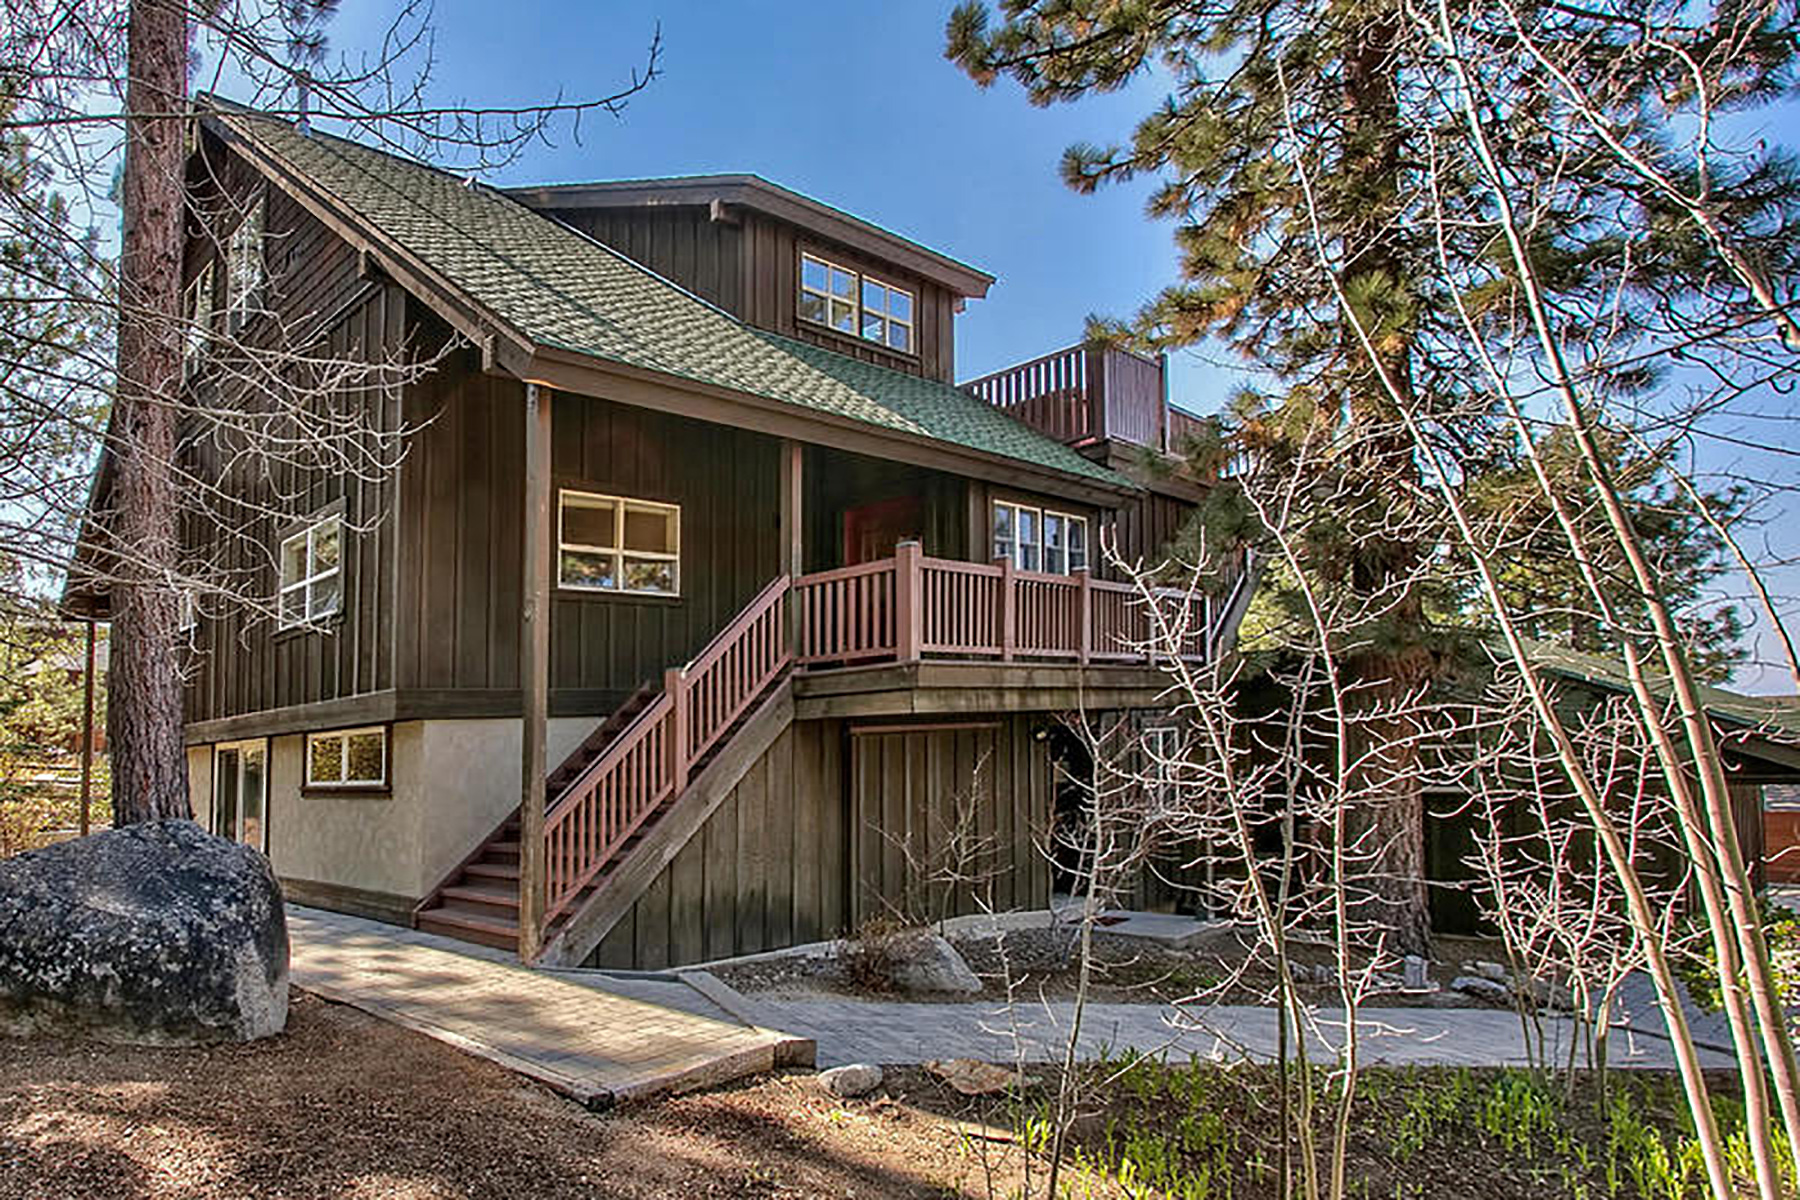 Property for Active at 3802 Lucinda Court, South Lake Tahoe, CA 96150 3802 Lucinda Court South Lake Tahoe, California 96150 United States